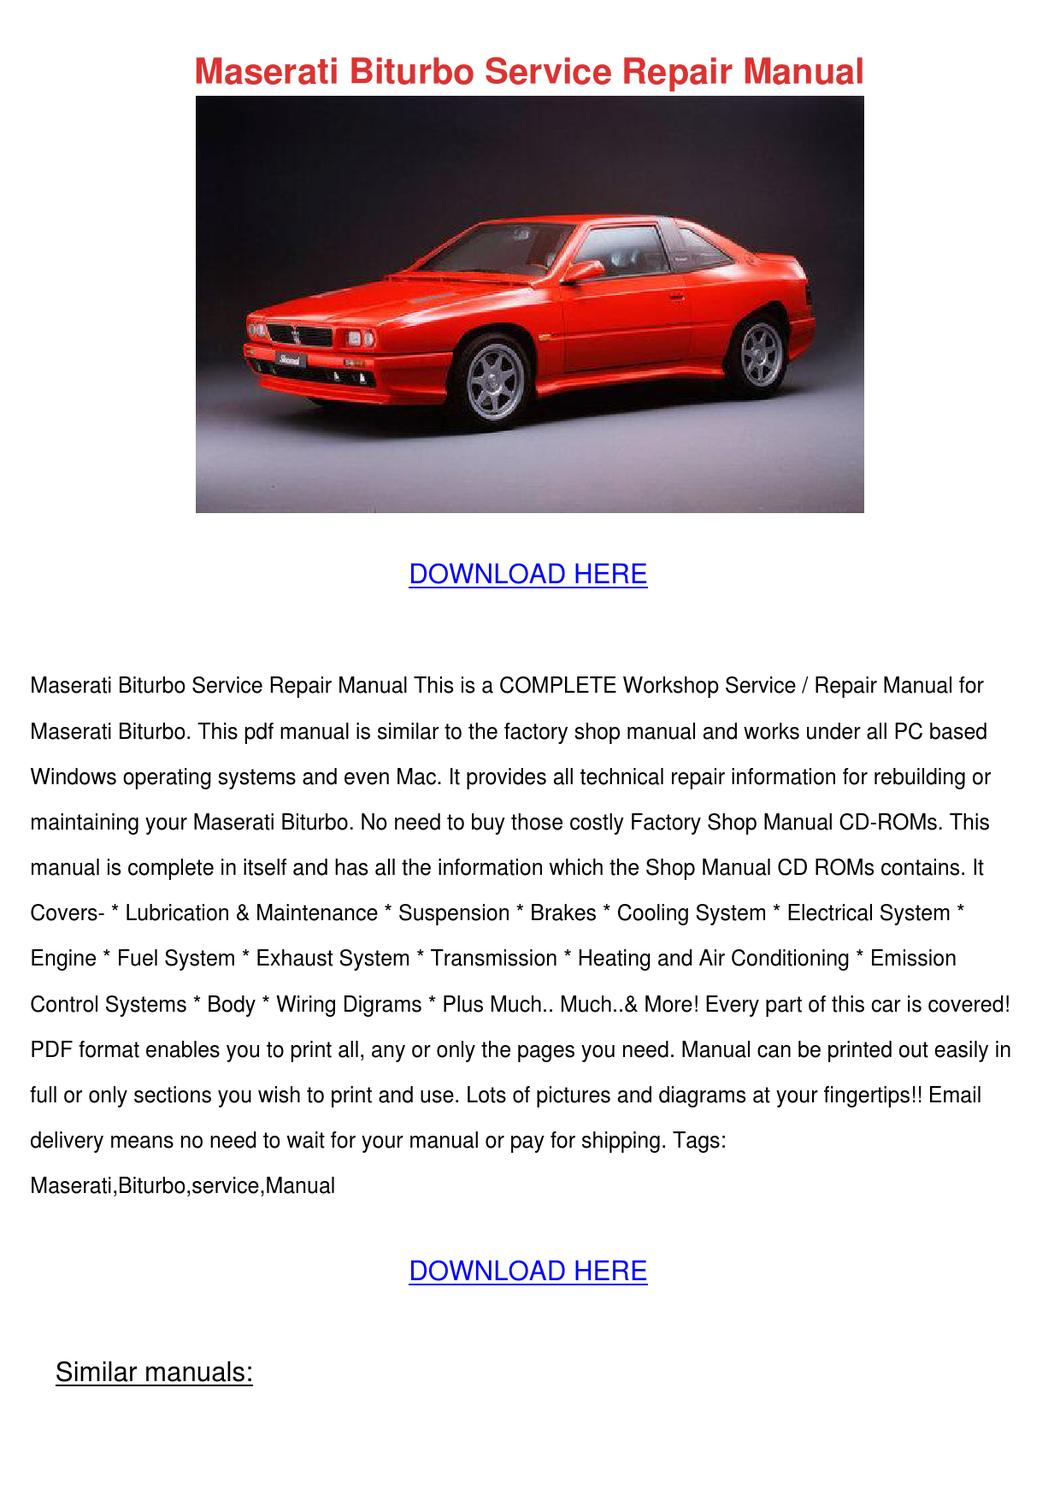 Maserati Biturbo Service Repair Manual By Jaysonharkins